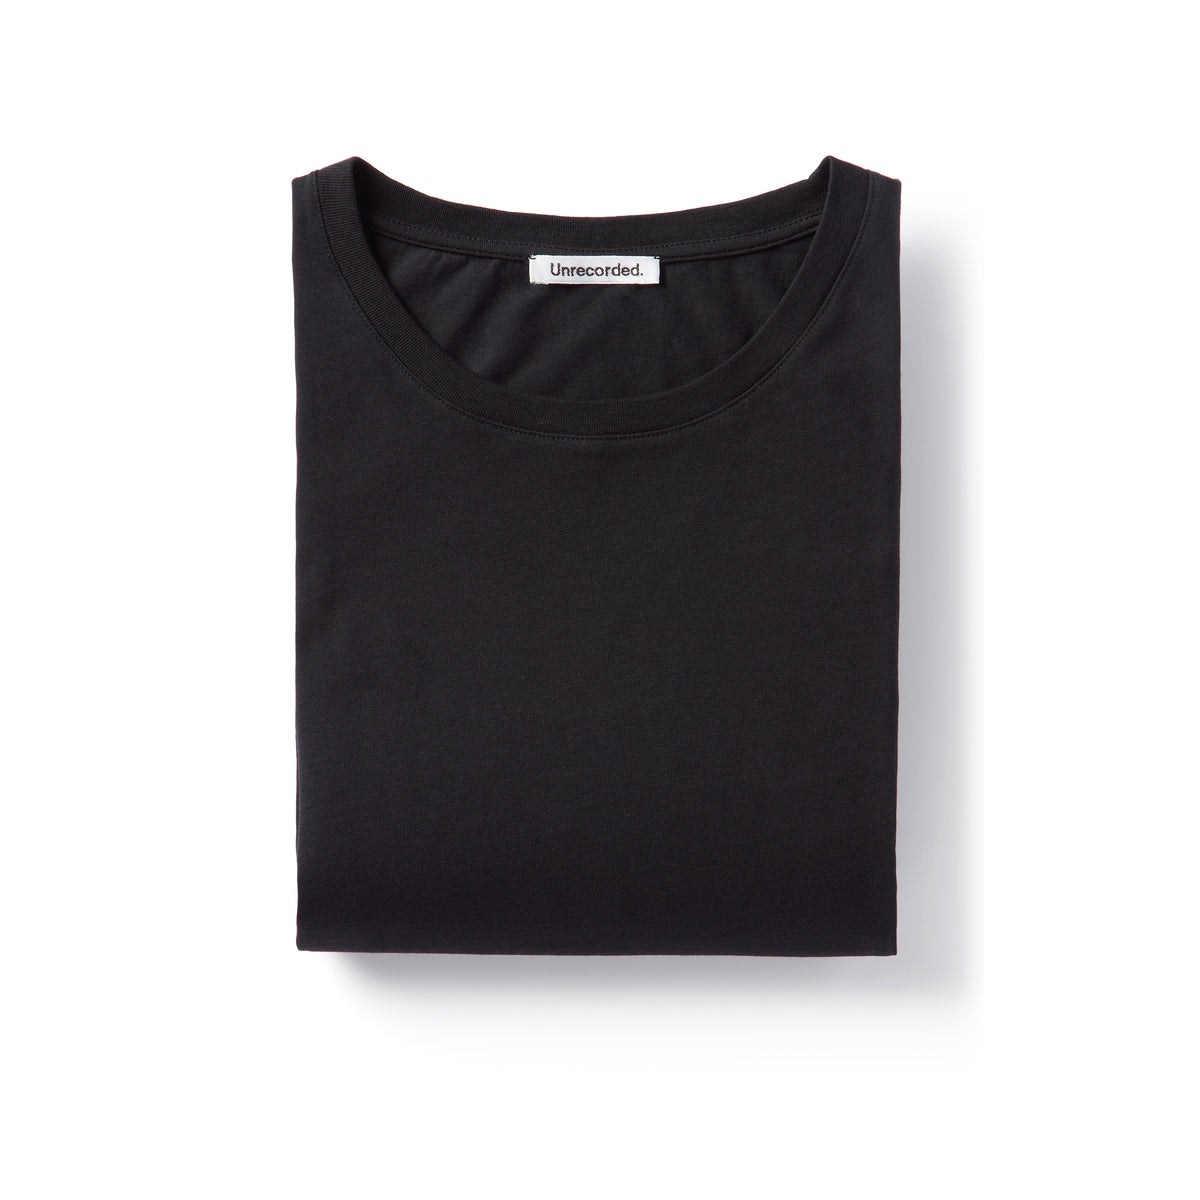 T-Shirt 155 GSM Black - Unrecorded